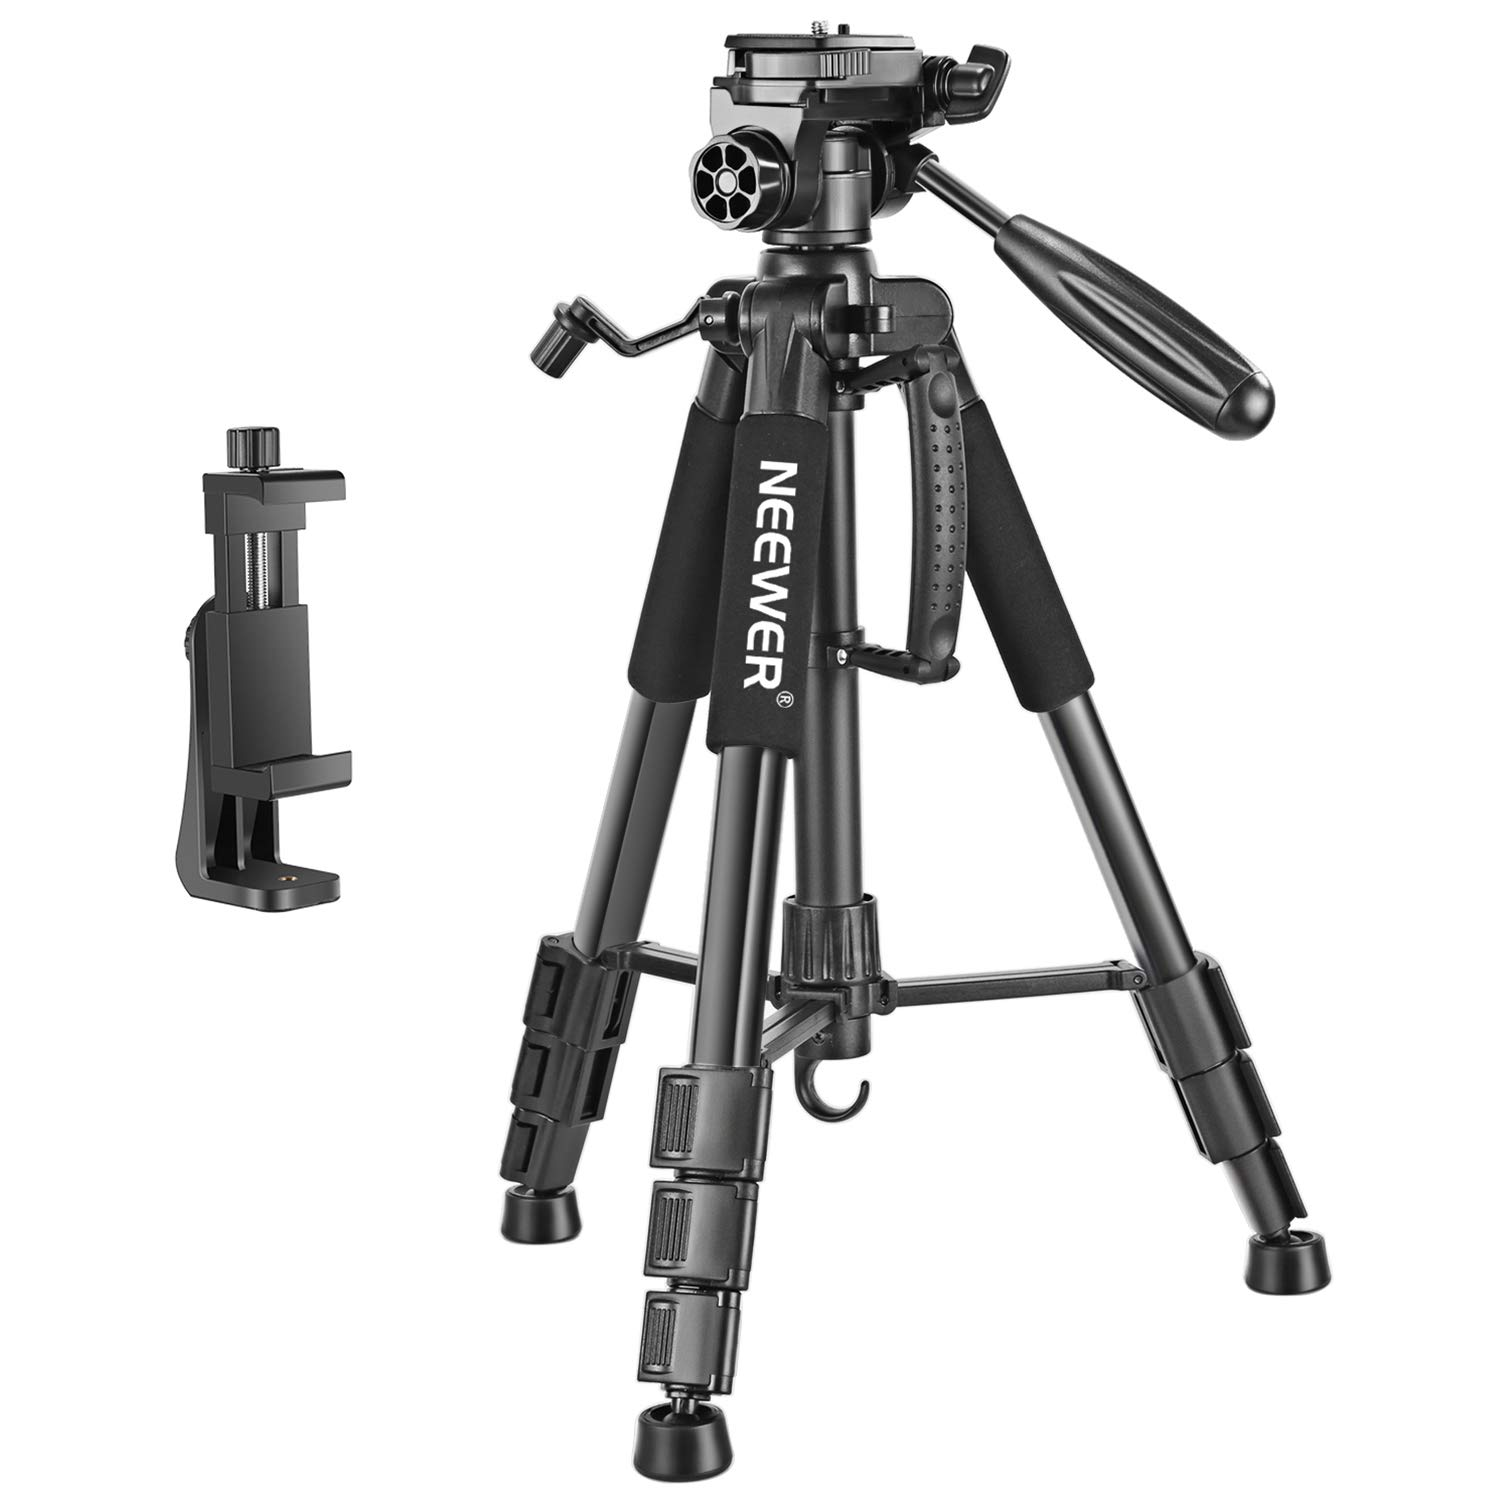 Neewer 56 inches Aluminum Camera Tripod with 3-Way Swivel...